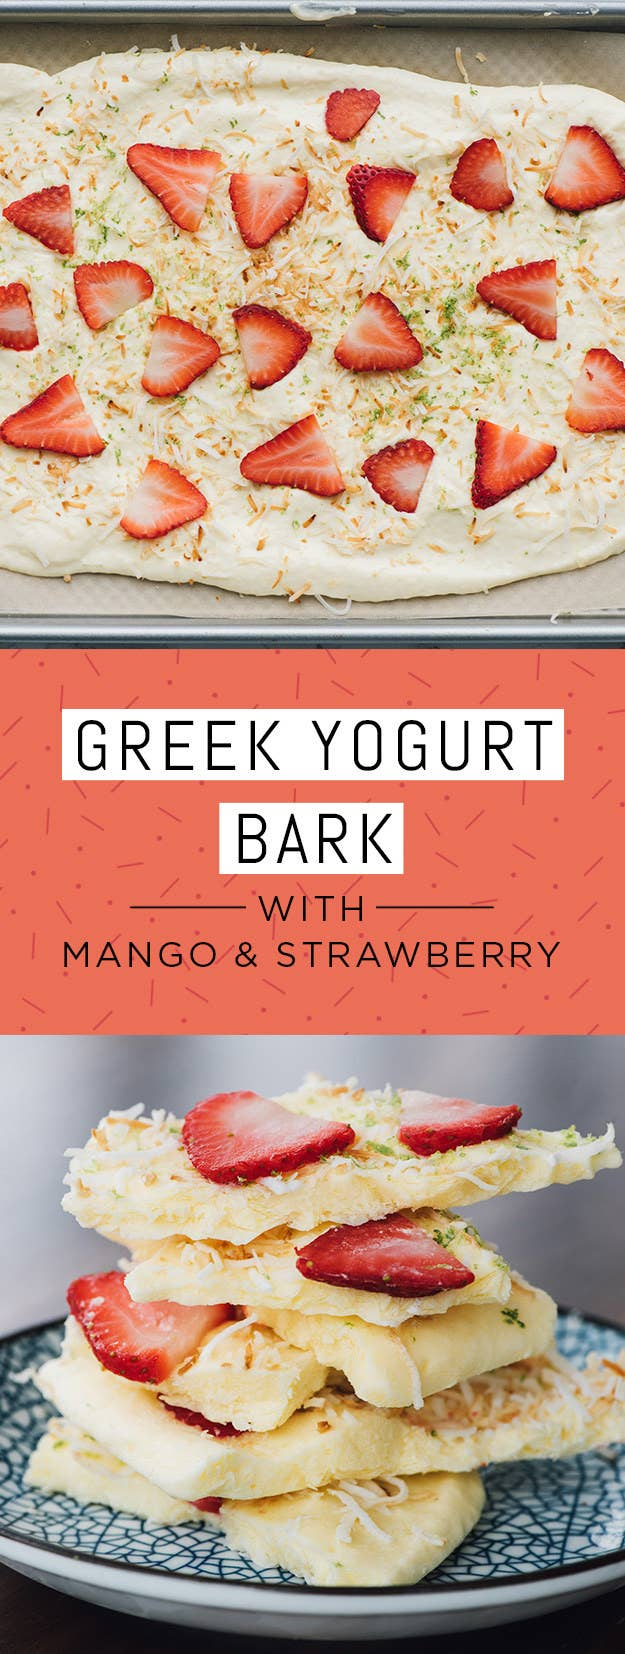 Greek Yogurt Bark With Mango & Strawberry